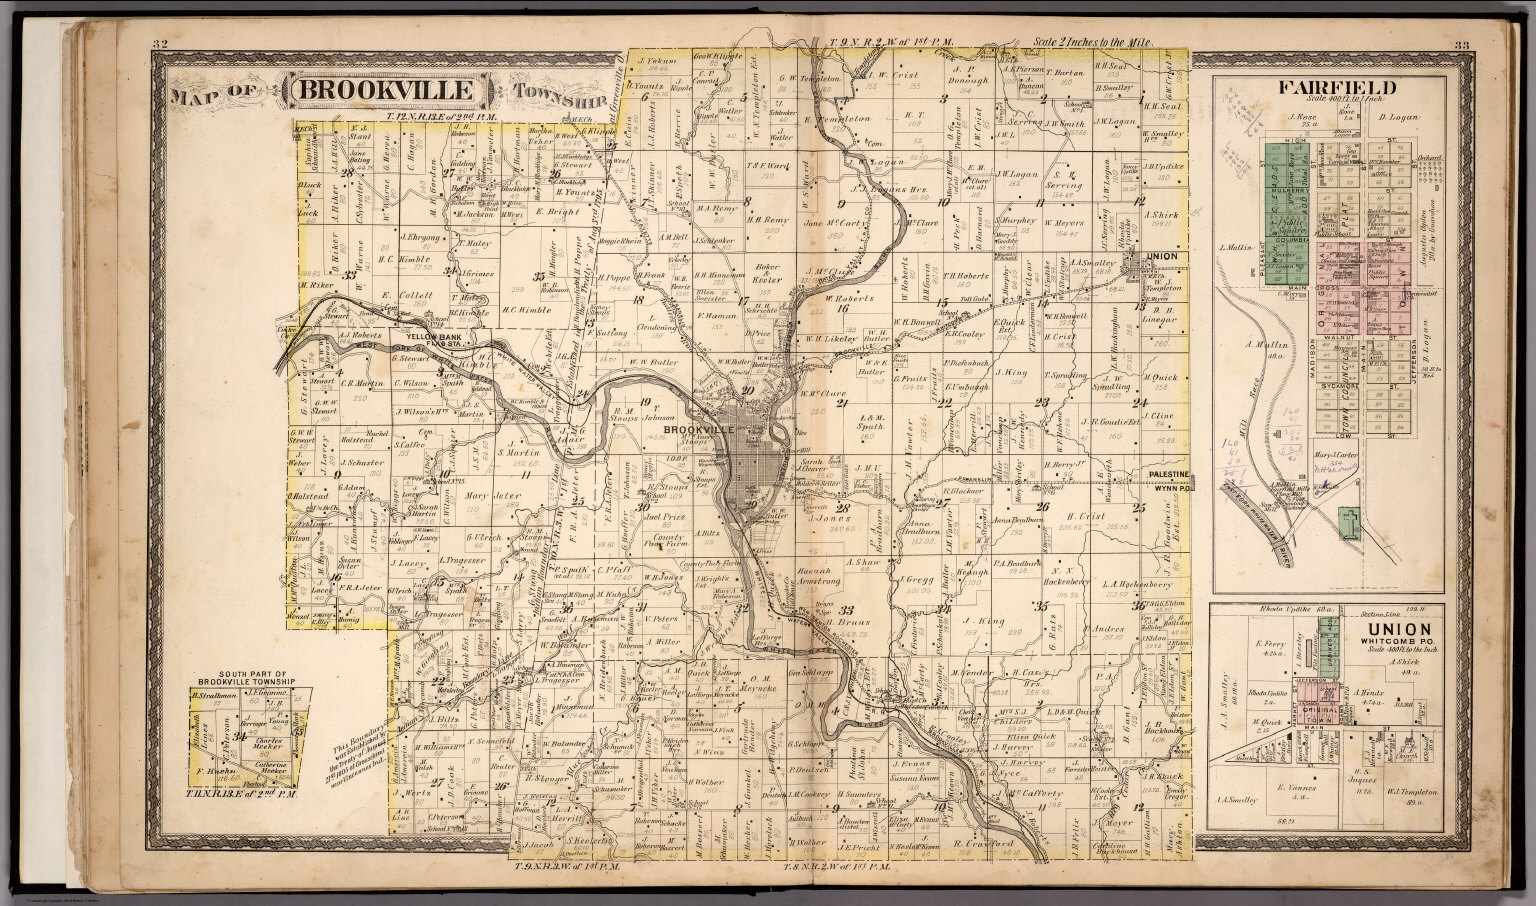 Brookville Township Franklin County Indiana Fairfield Union